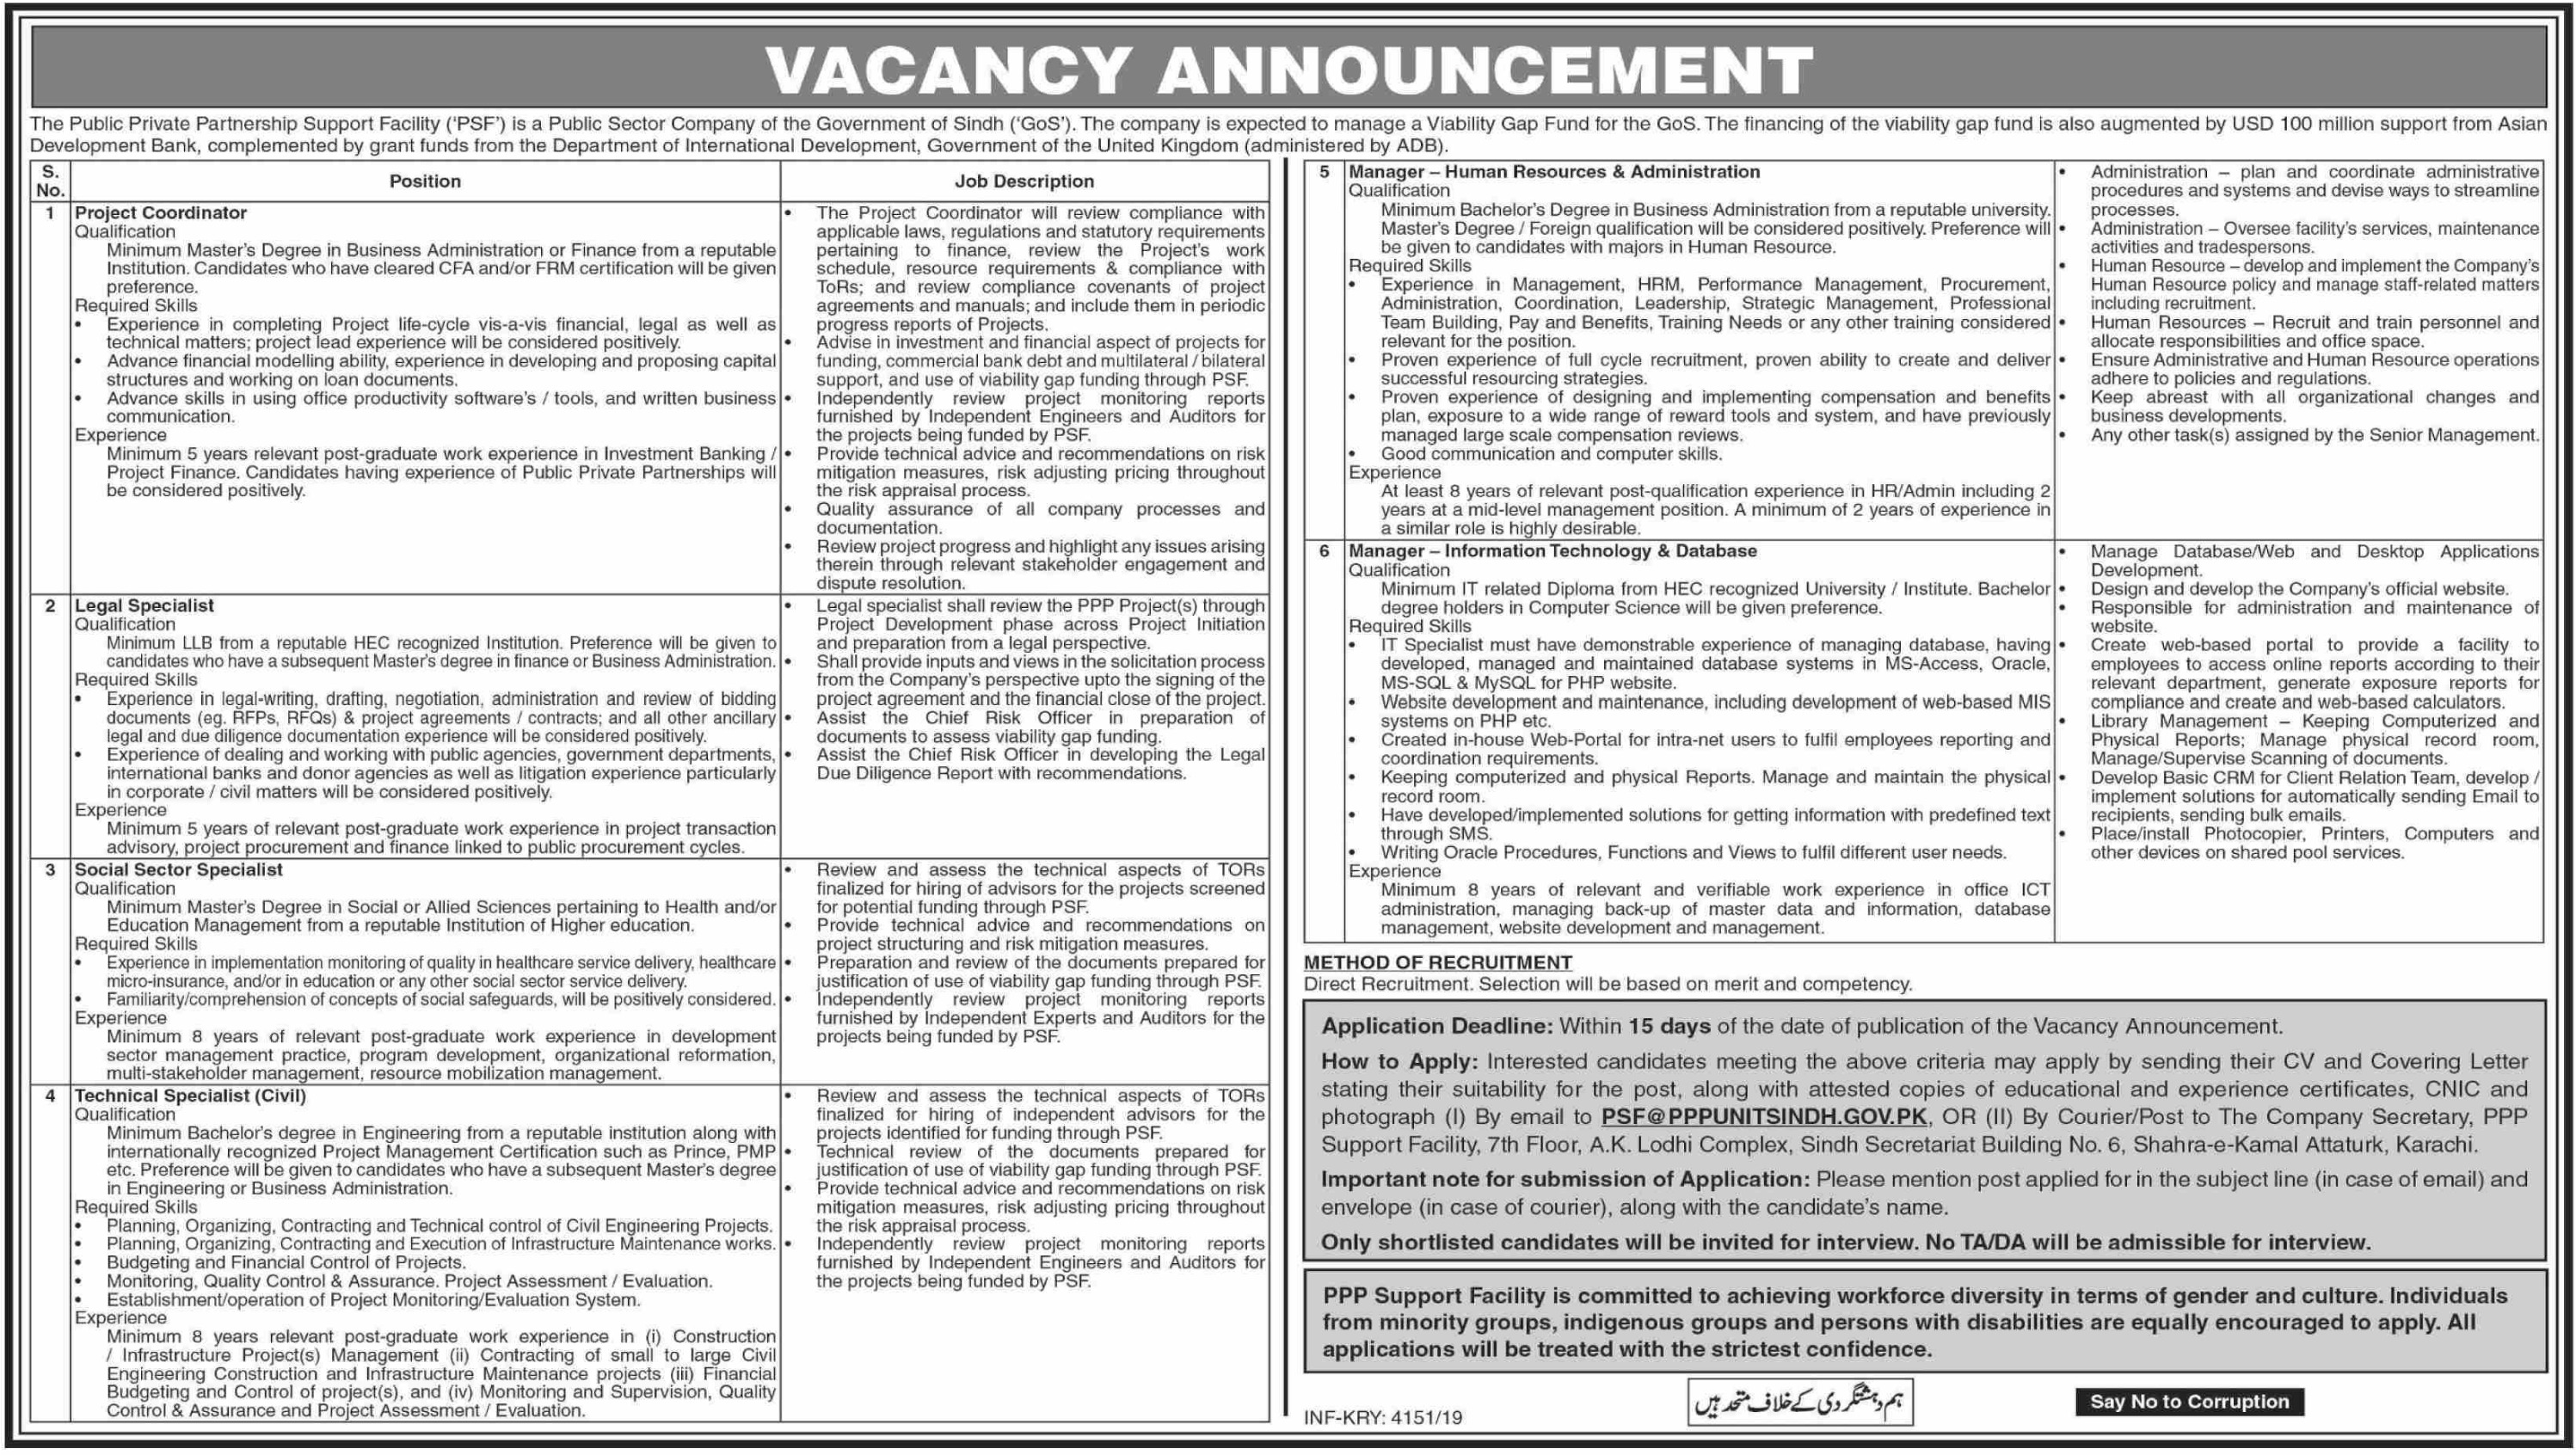 PPP Support Facility Government of Sindh Jobs 2019